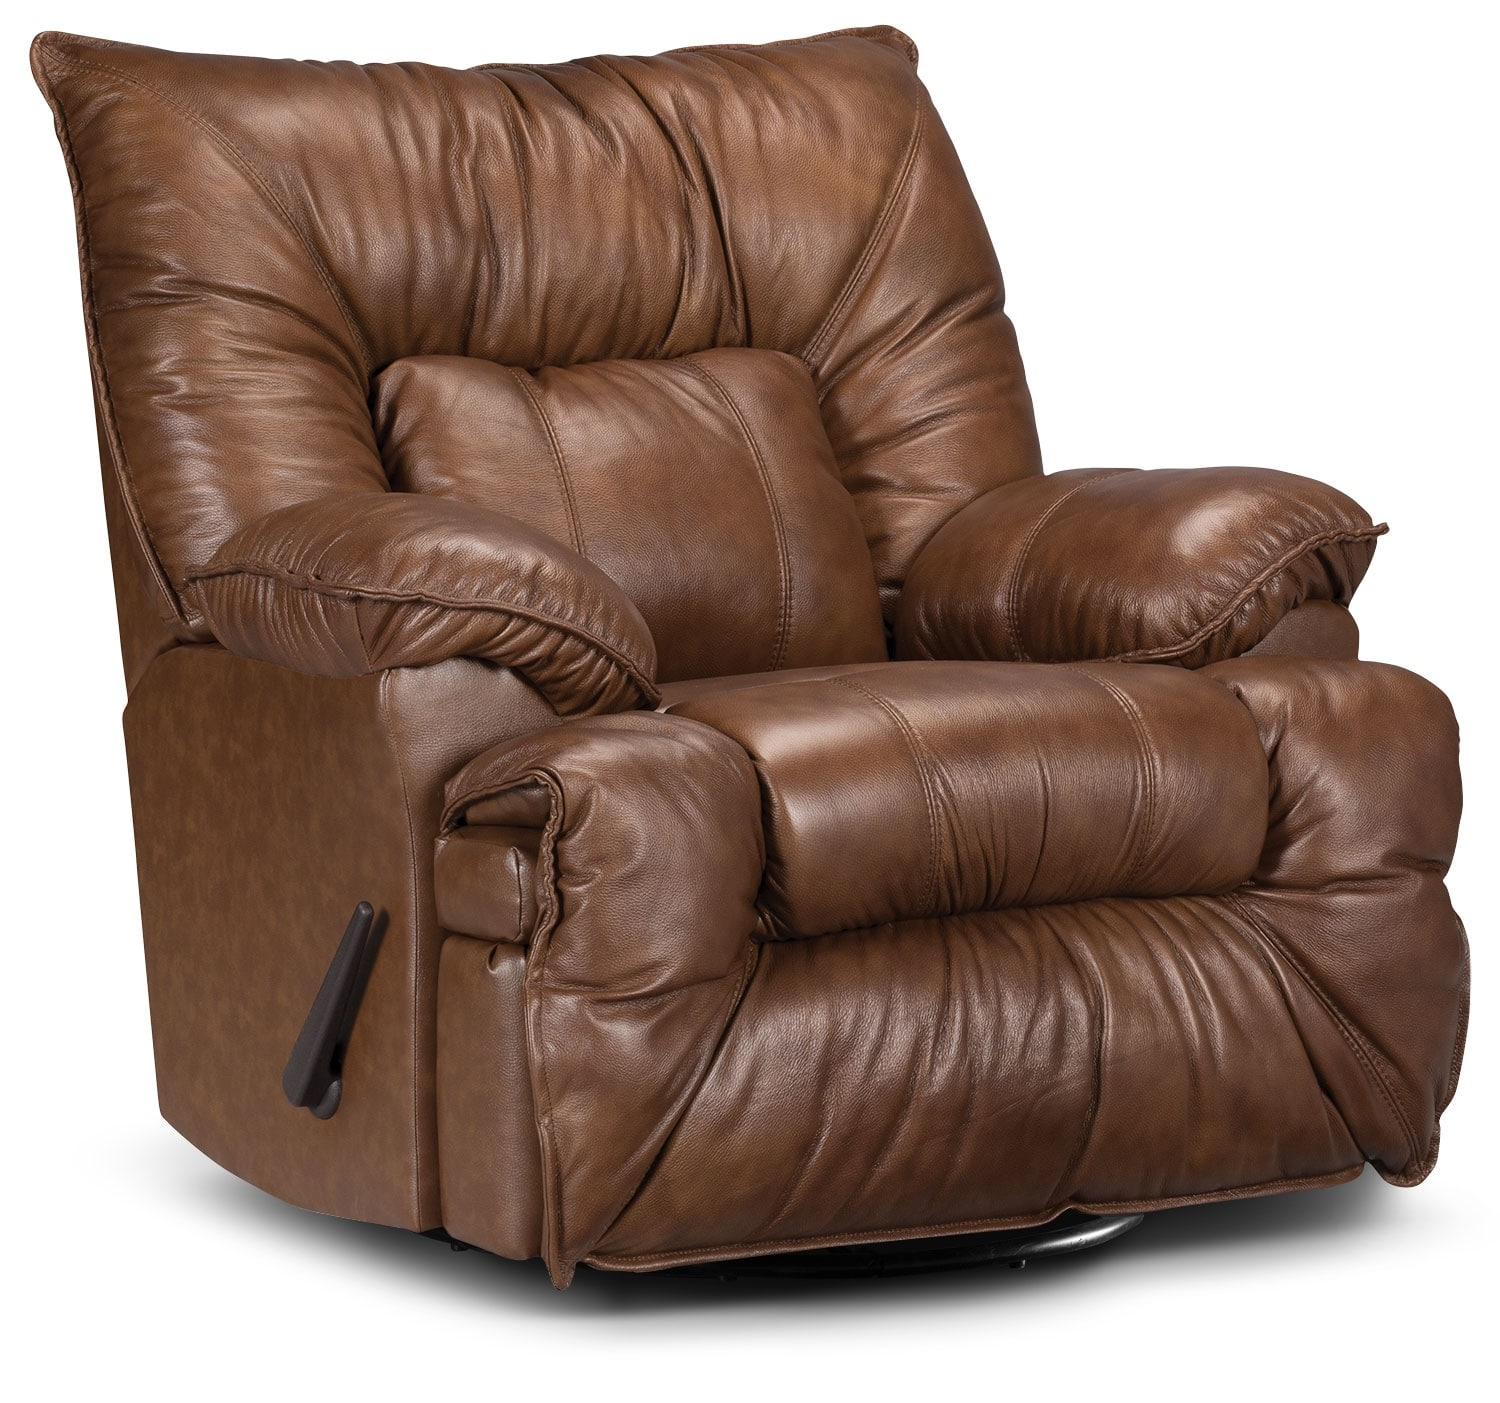 Living Room Furniture - Designed2B Recliner 7726 Genuine Leather Swivel Glider Chair - Saddle